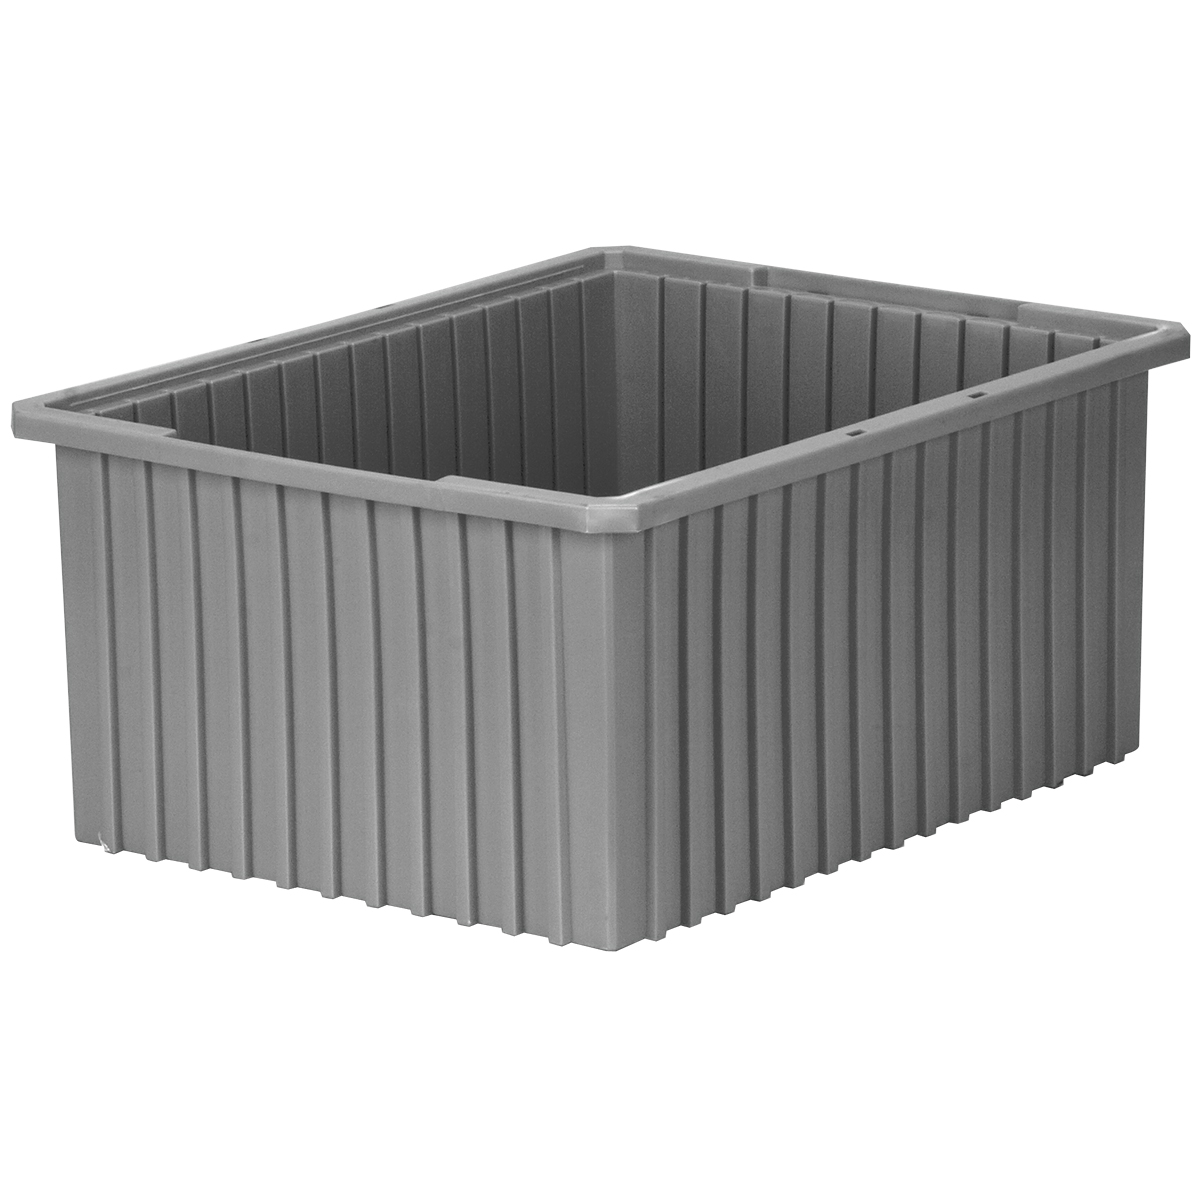 Akro-Grid Dividable Box 22-3/8 x 17-3/8 x 10, Gray (33220GREY).  This item sold in carton quantities of 2.